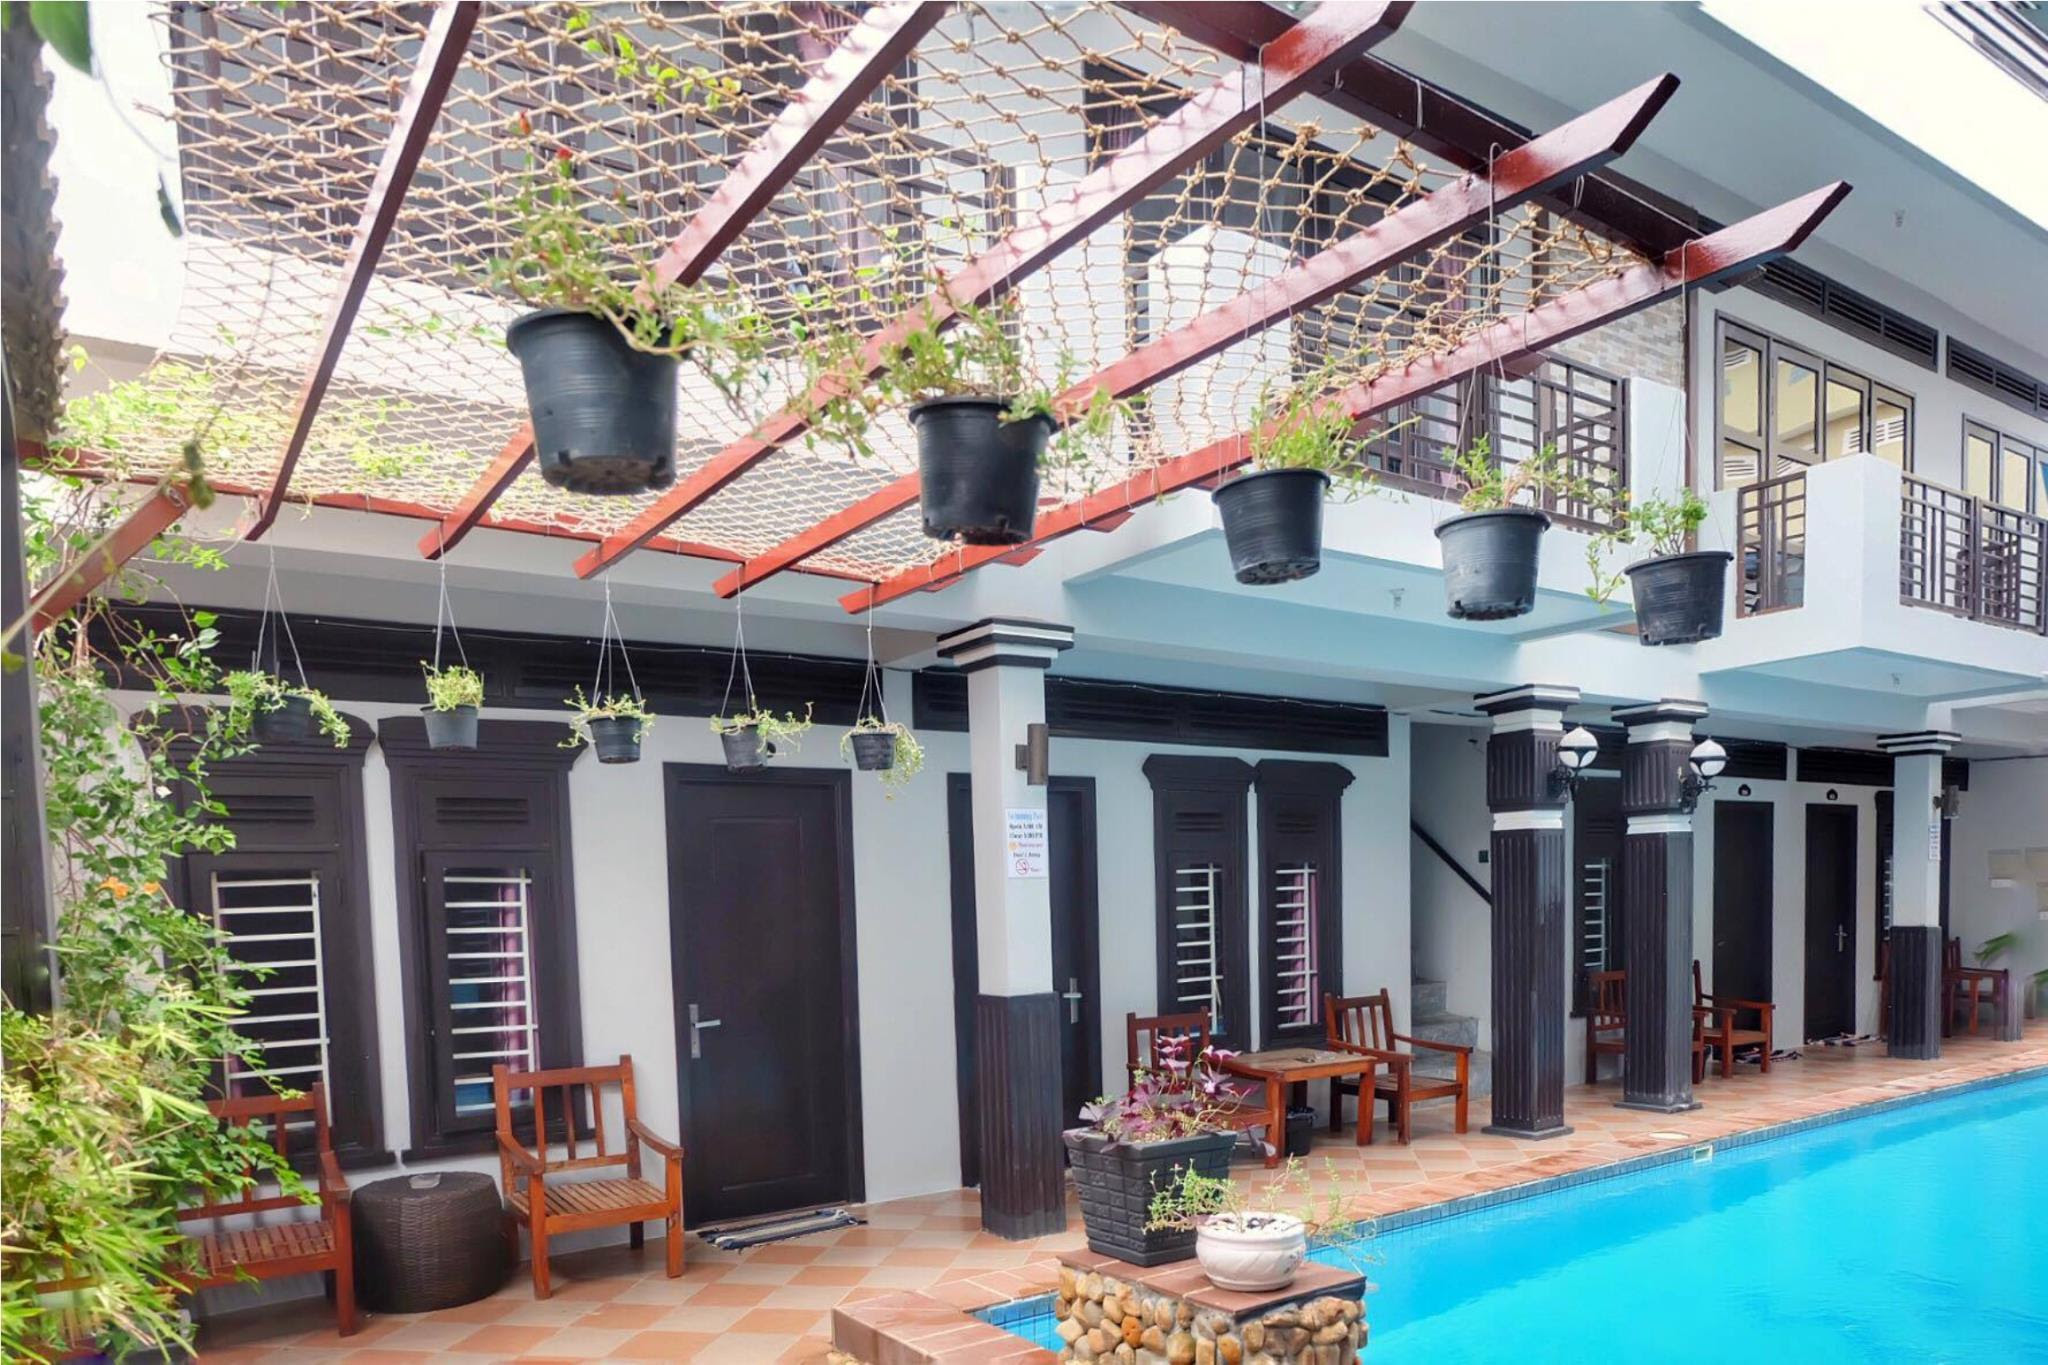 Price VIBOLA Guesthouse